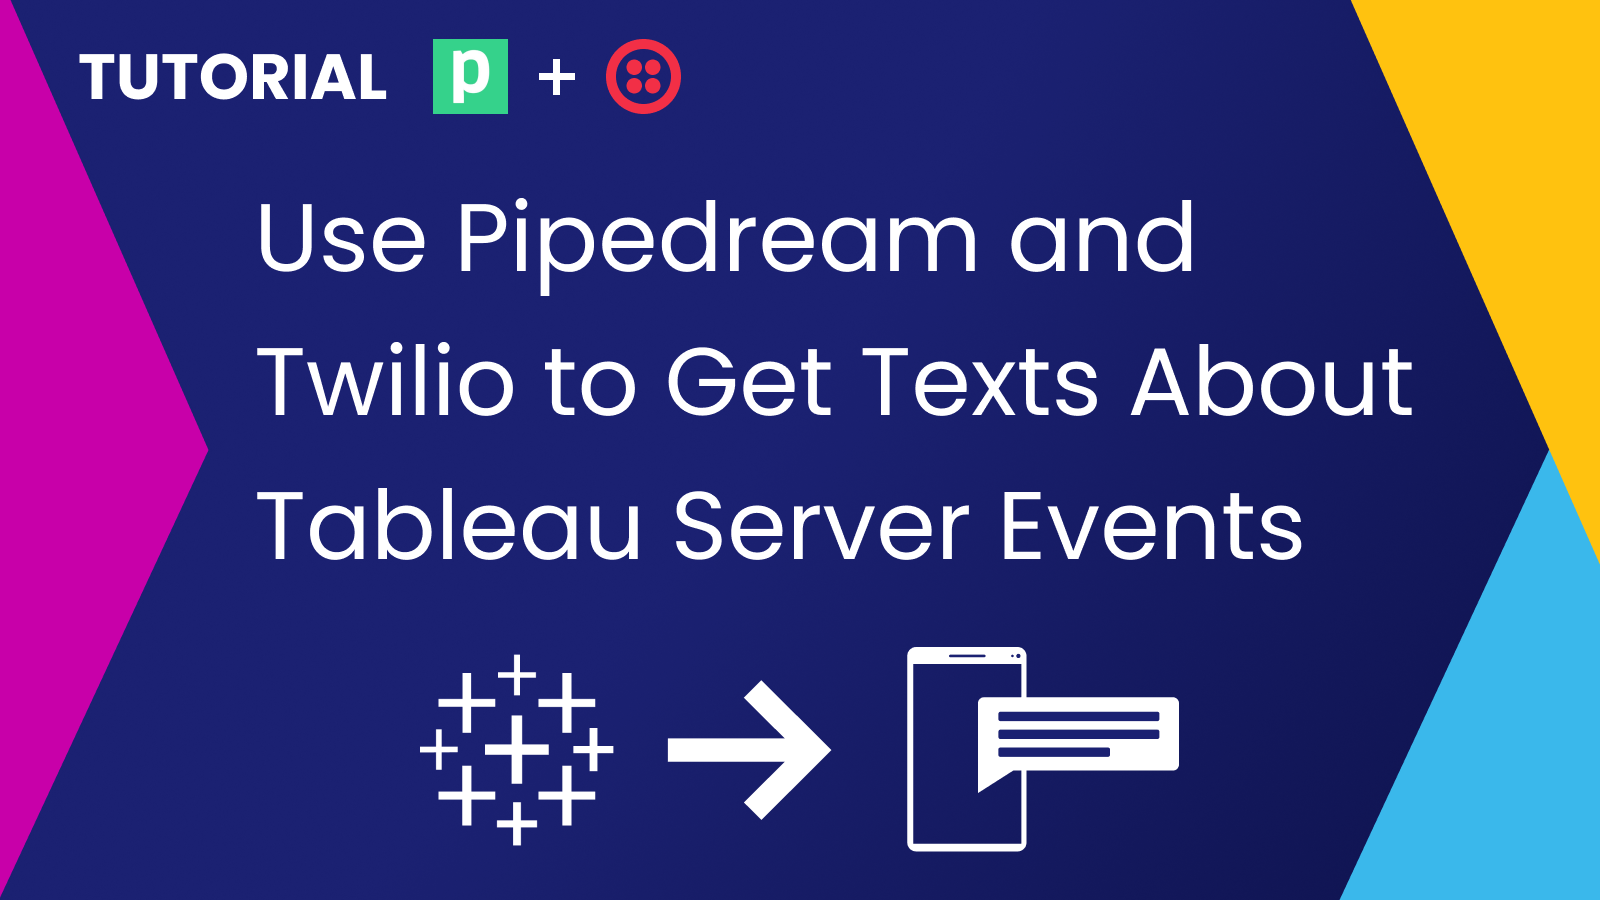 Use Pipedream and Twilio to Get Texts About Tableau Server Events